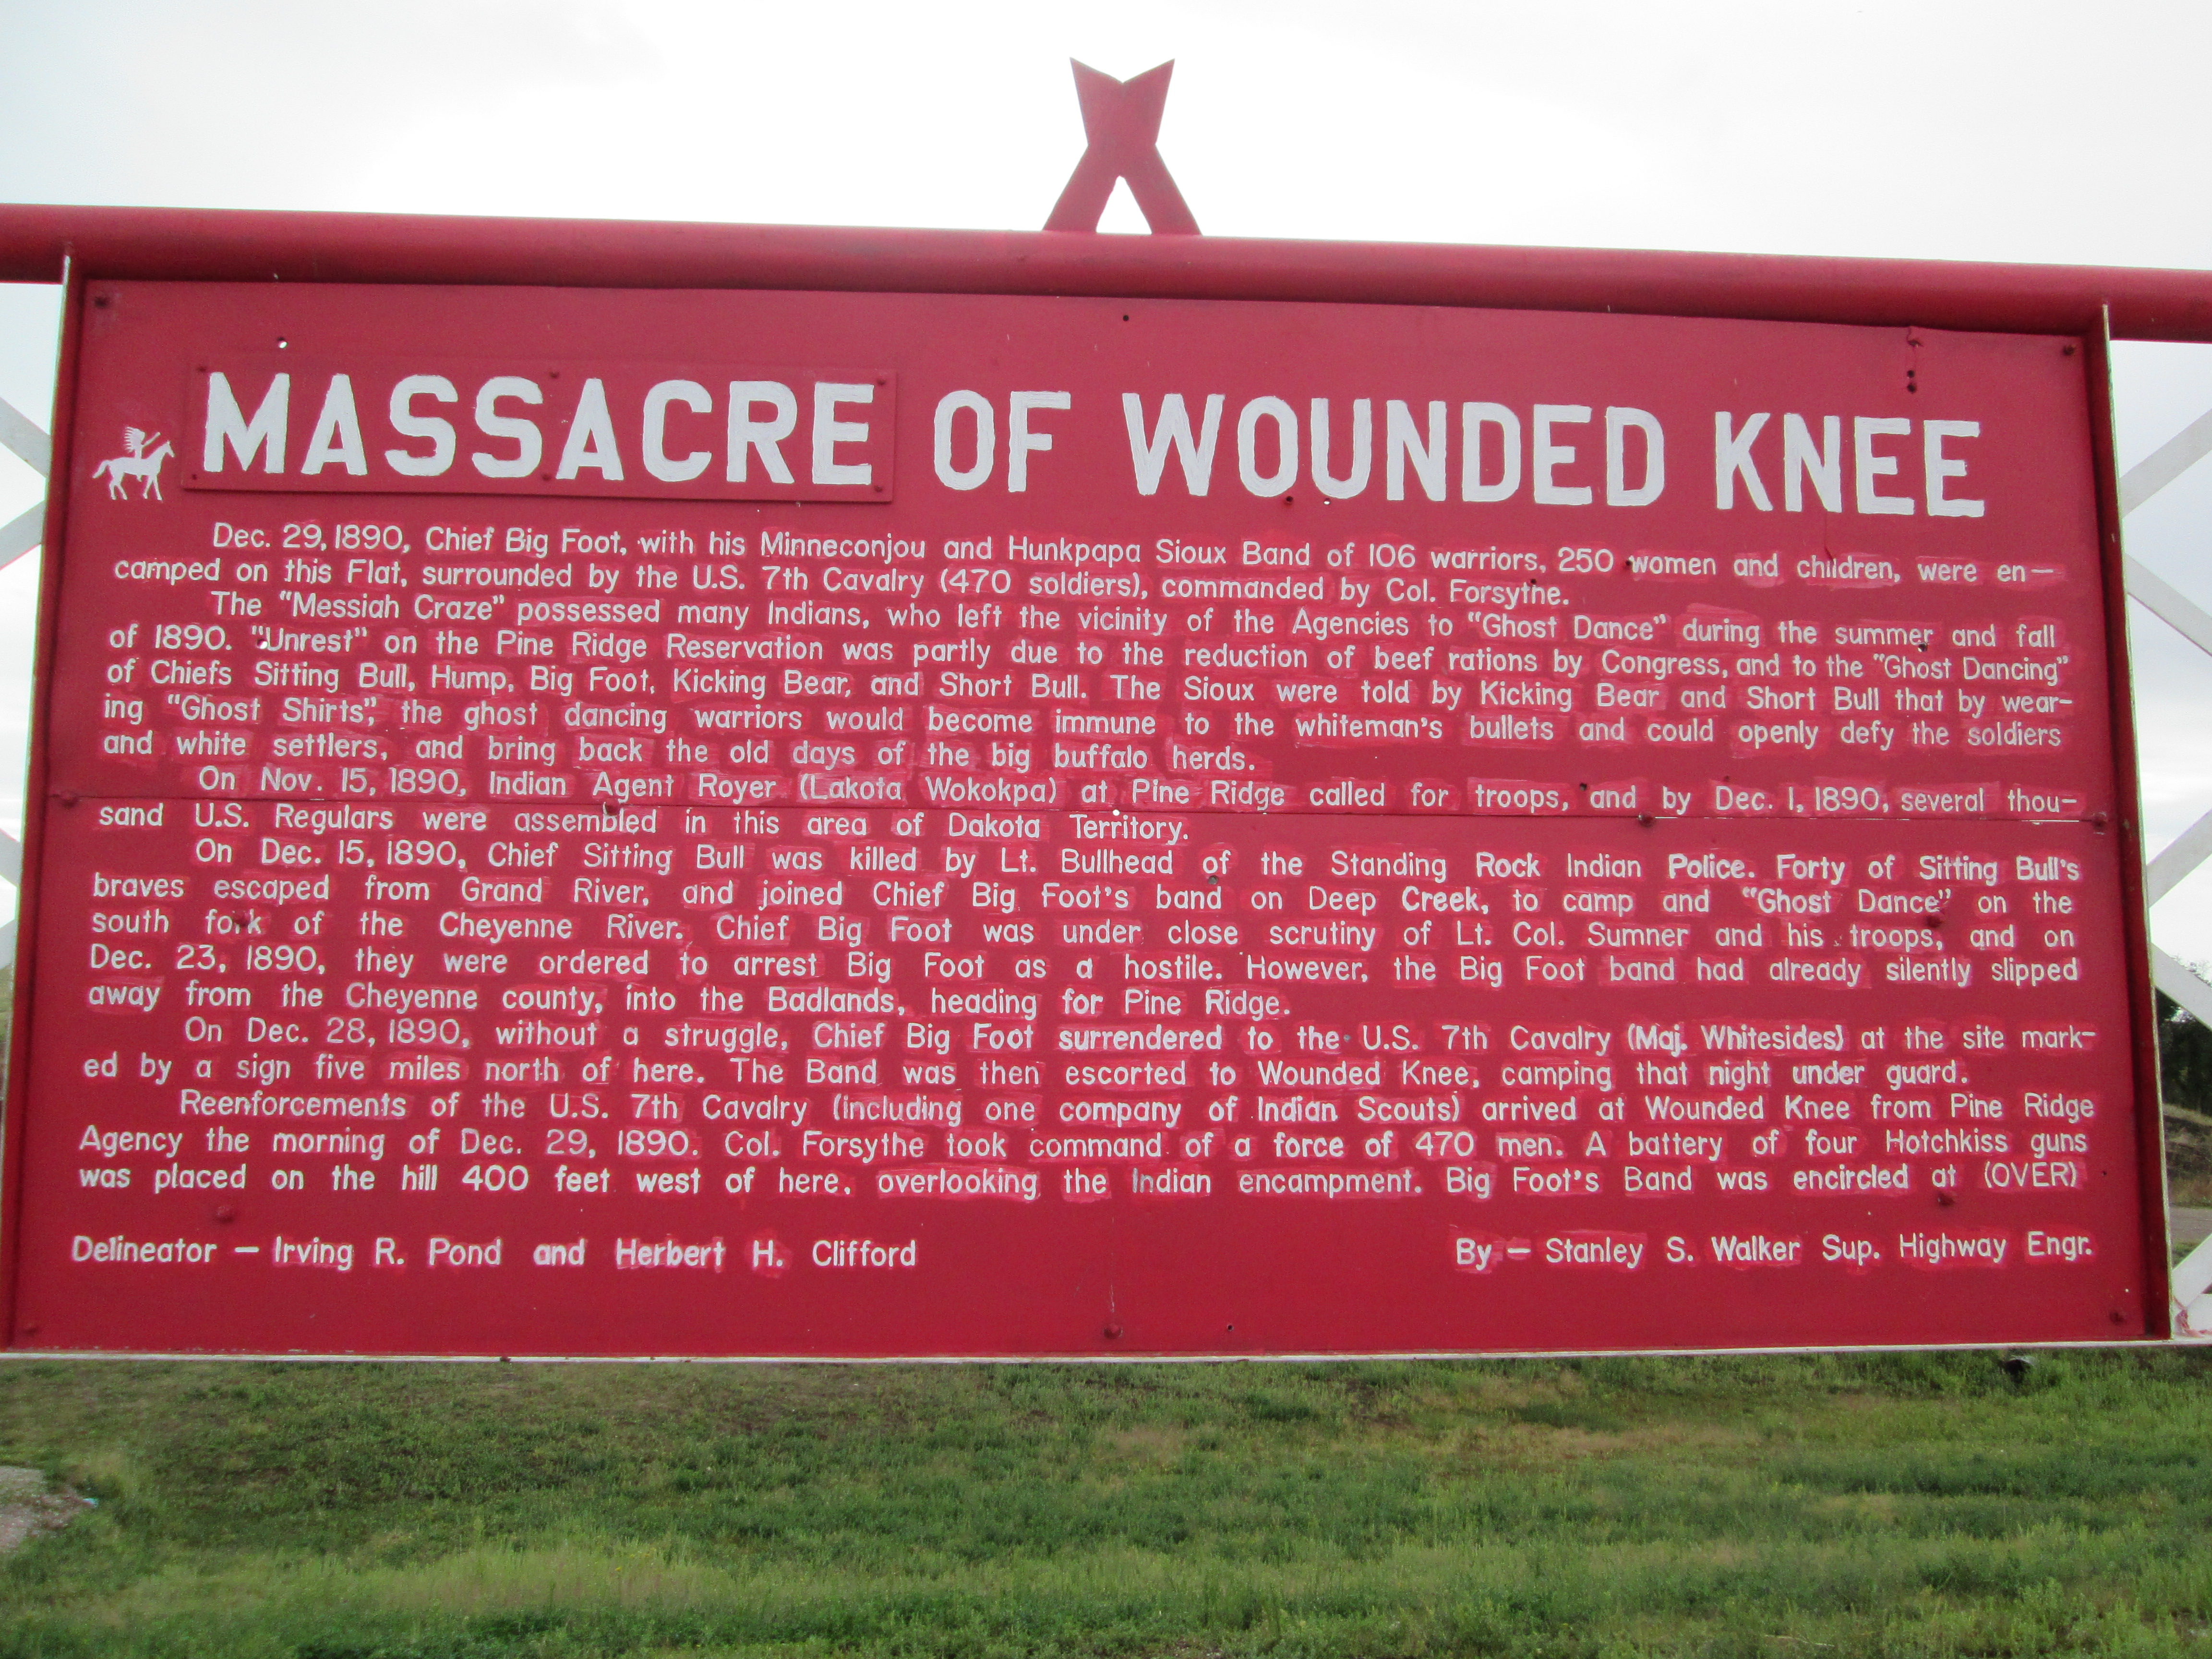 wounded knee The battle of wounded knee, or wounded knee massacre, was the last conflict  between native americans and us soldiers of the indian wars.